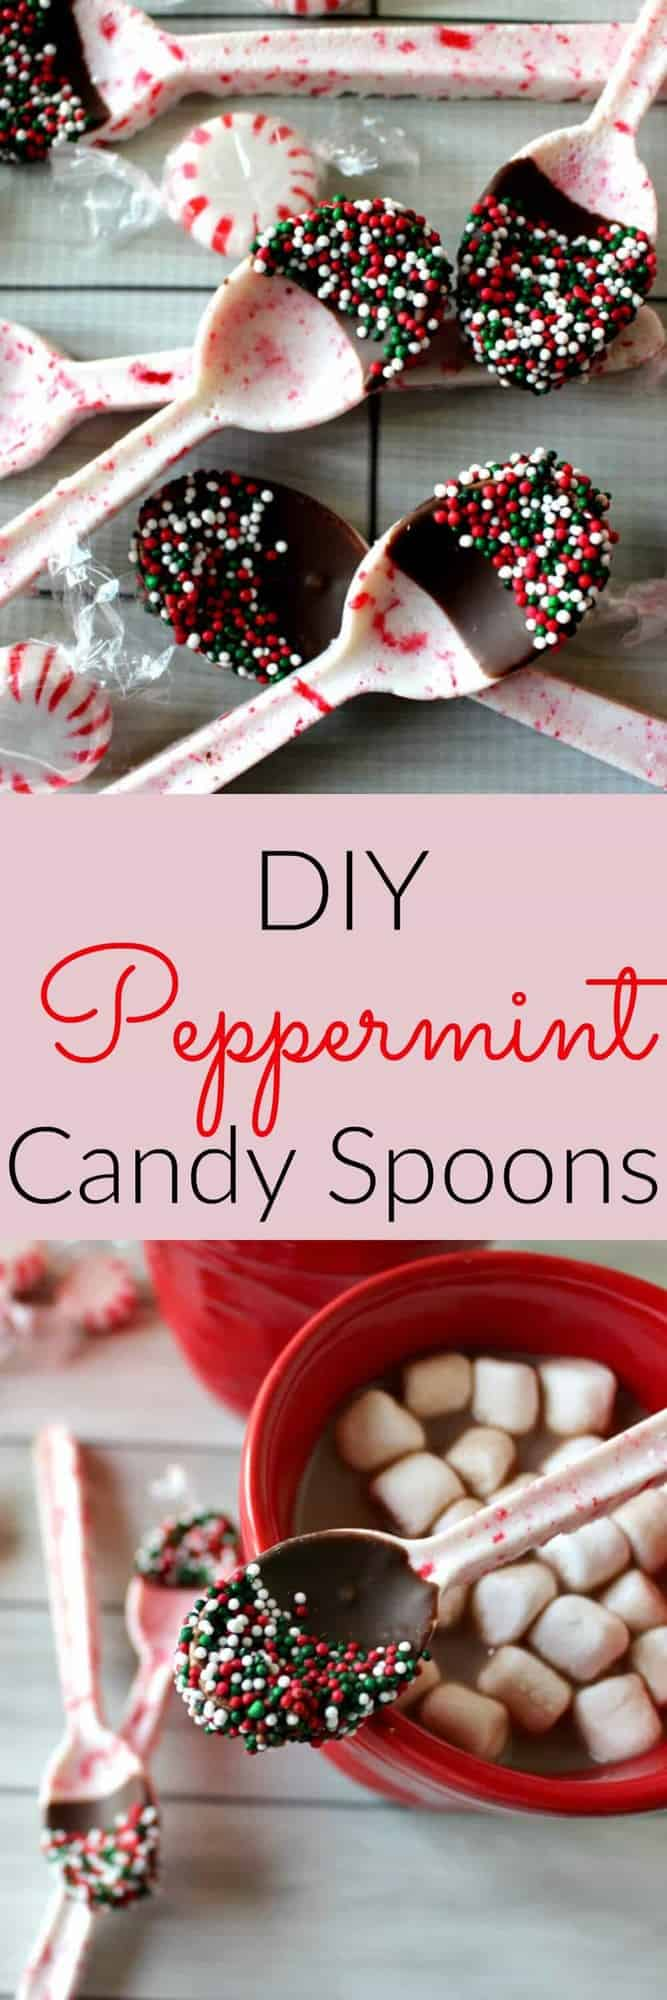 DIY Peppermint Candy Spoons - Princess Pinky Girl